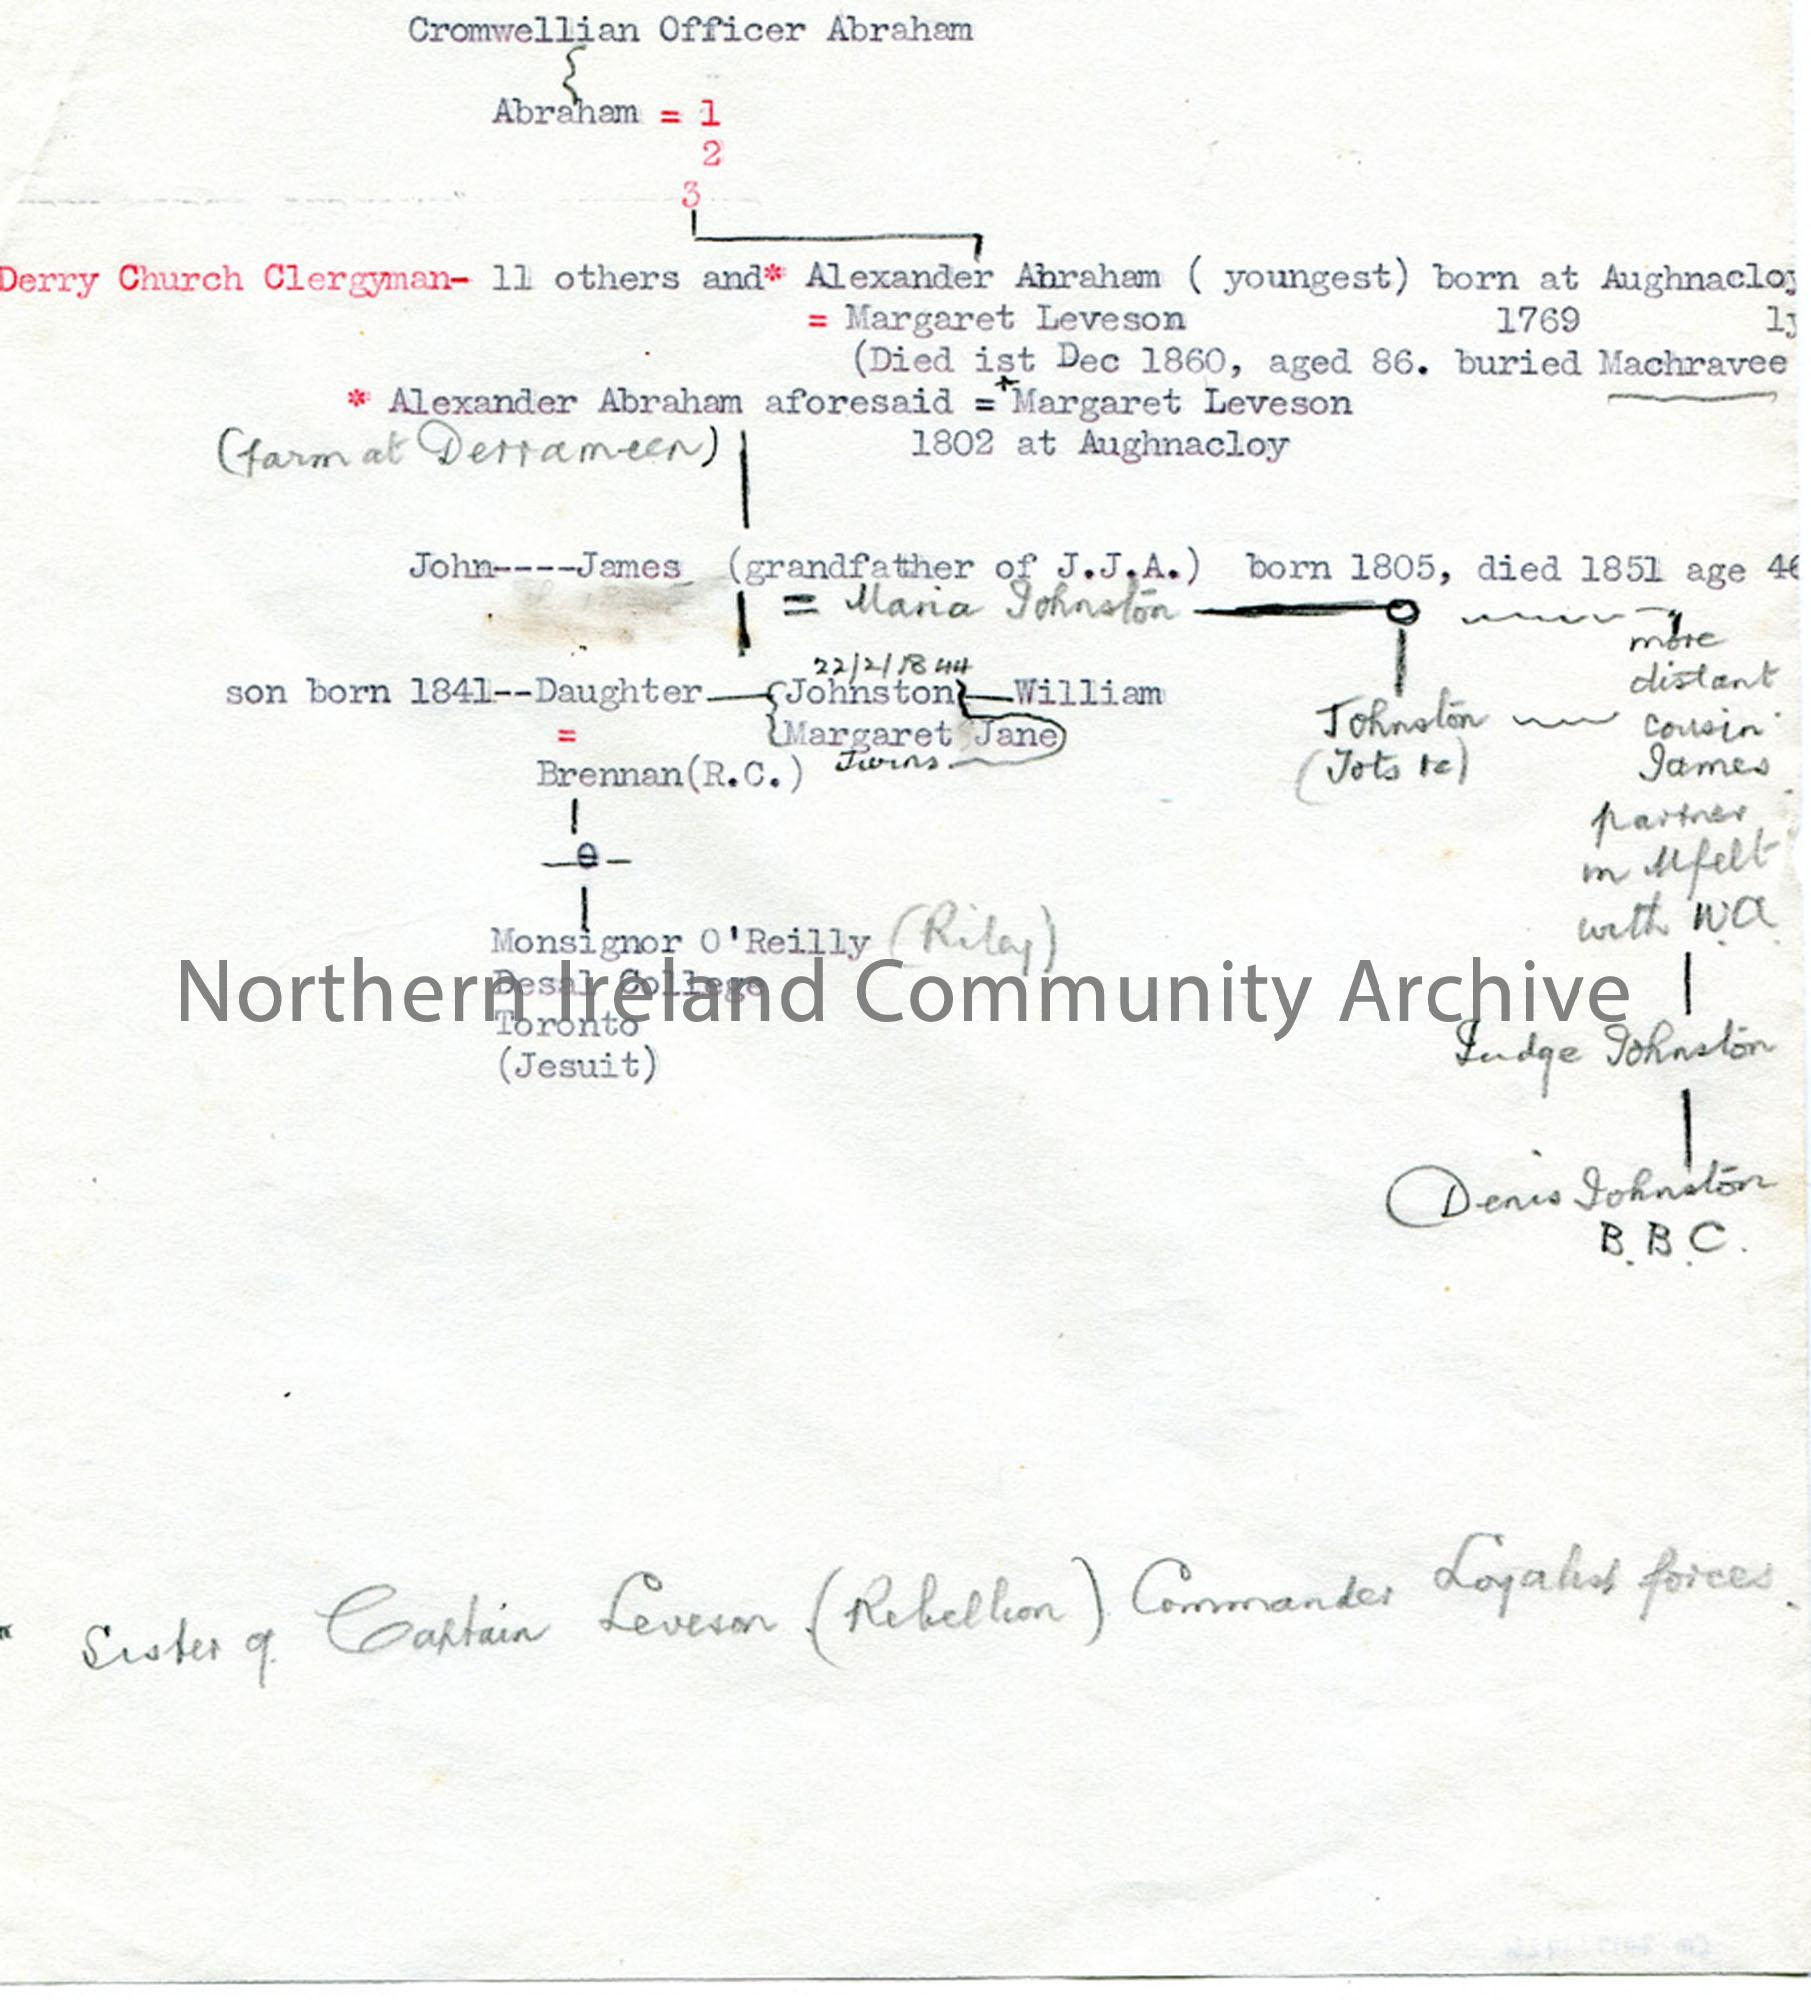 Abraham family tree (4565)